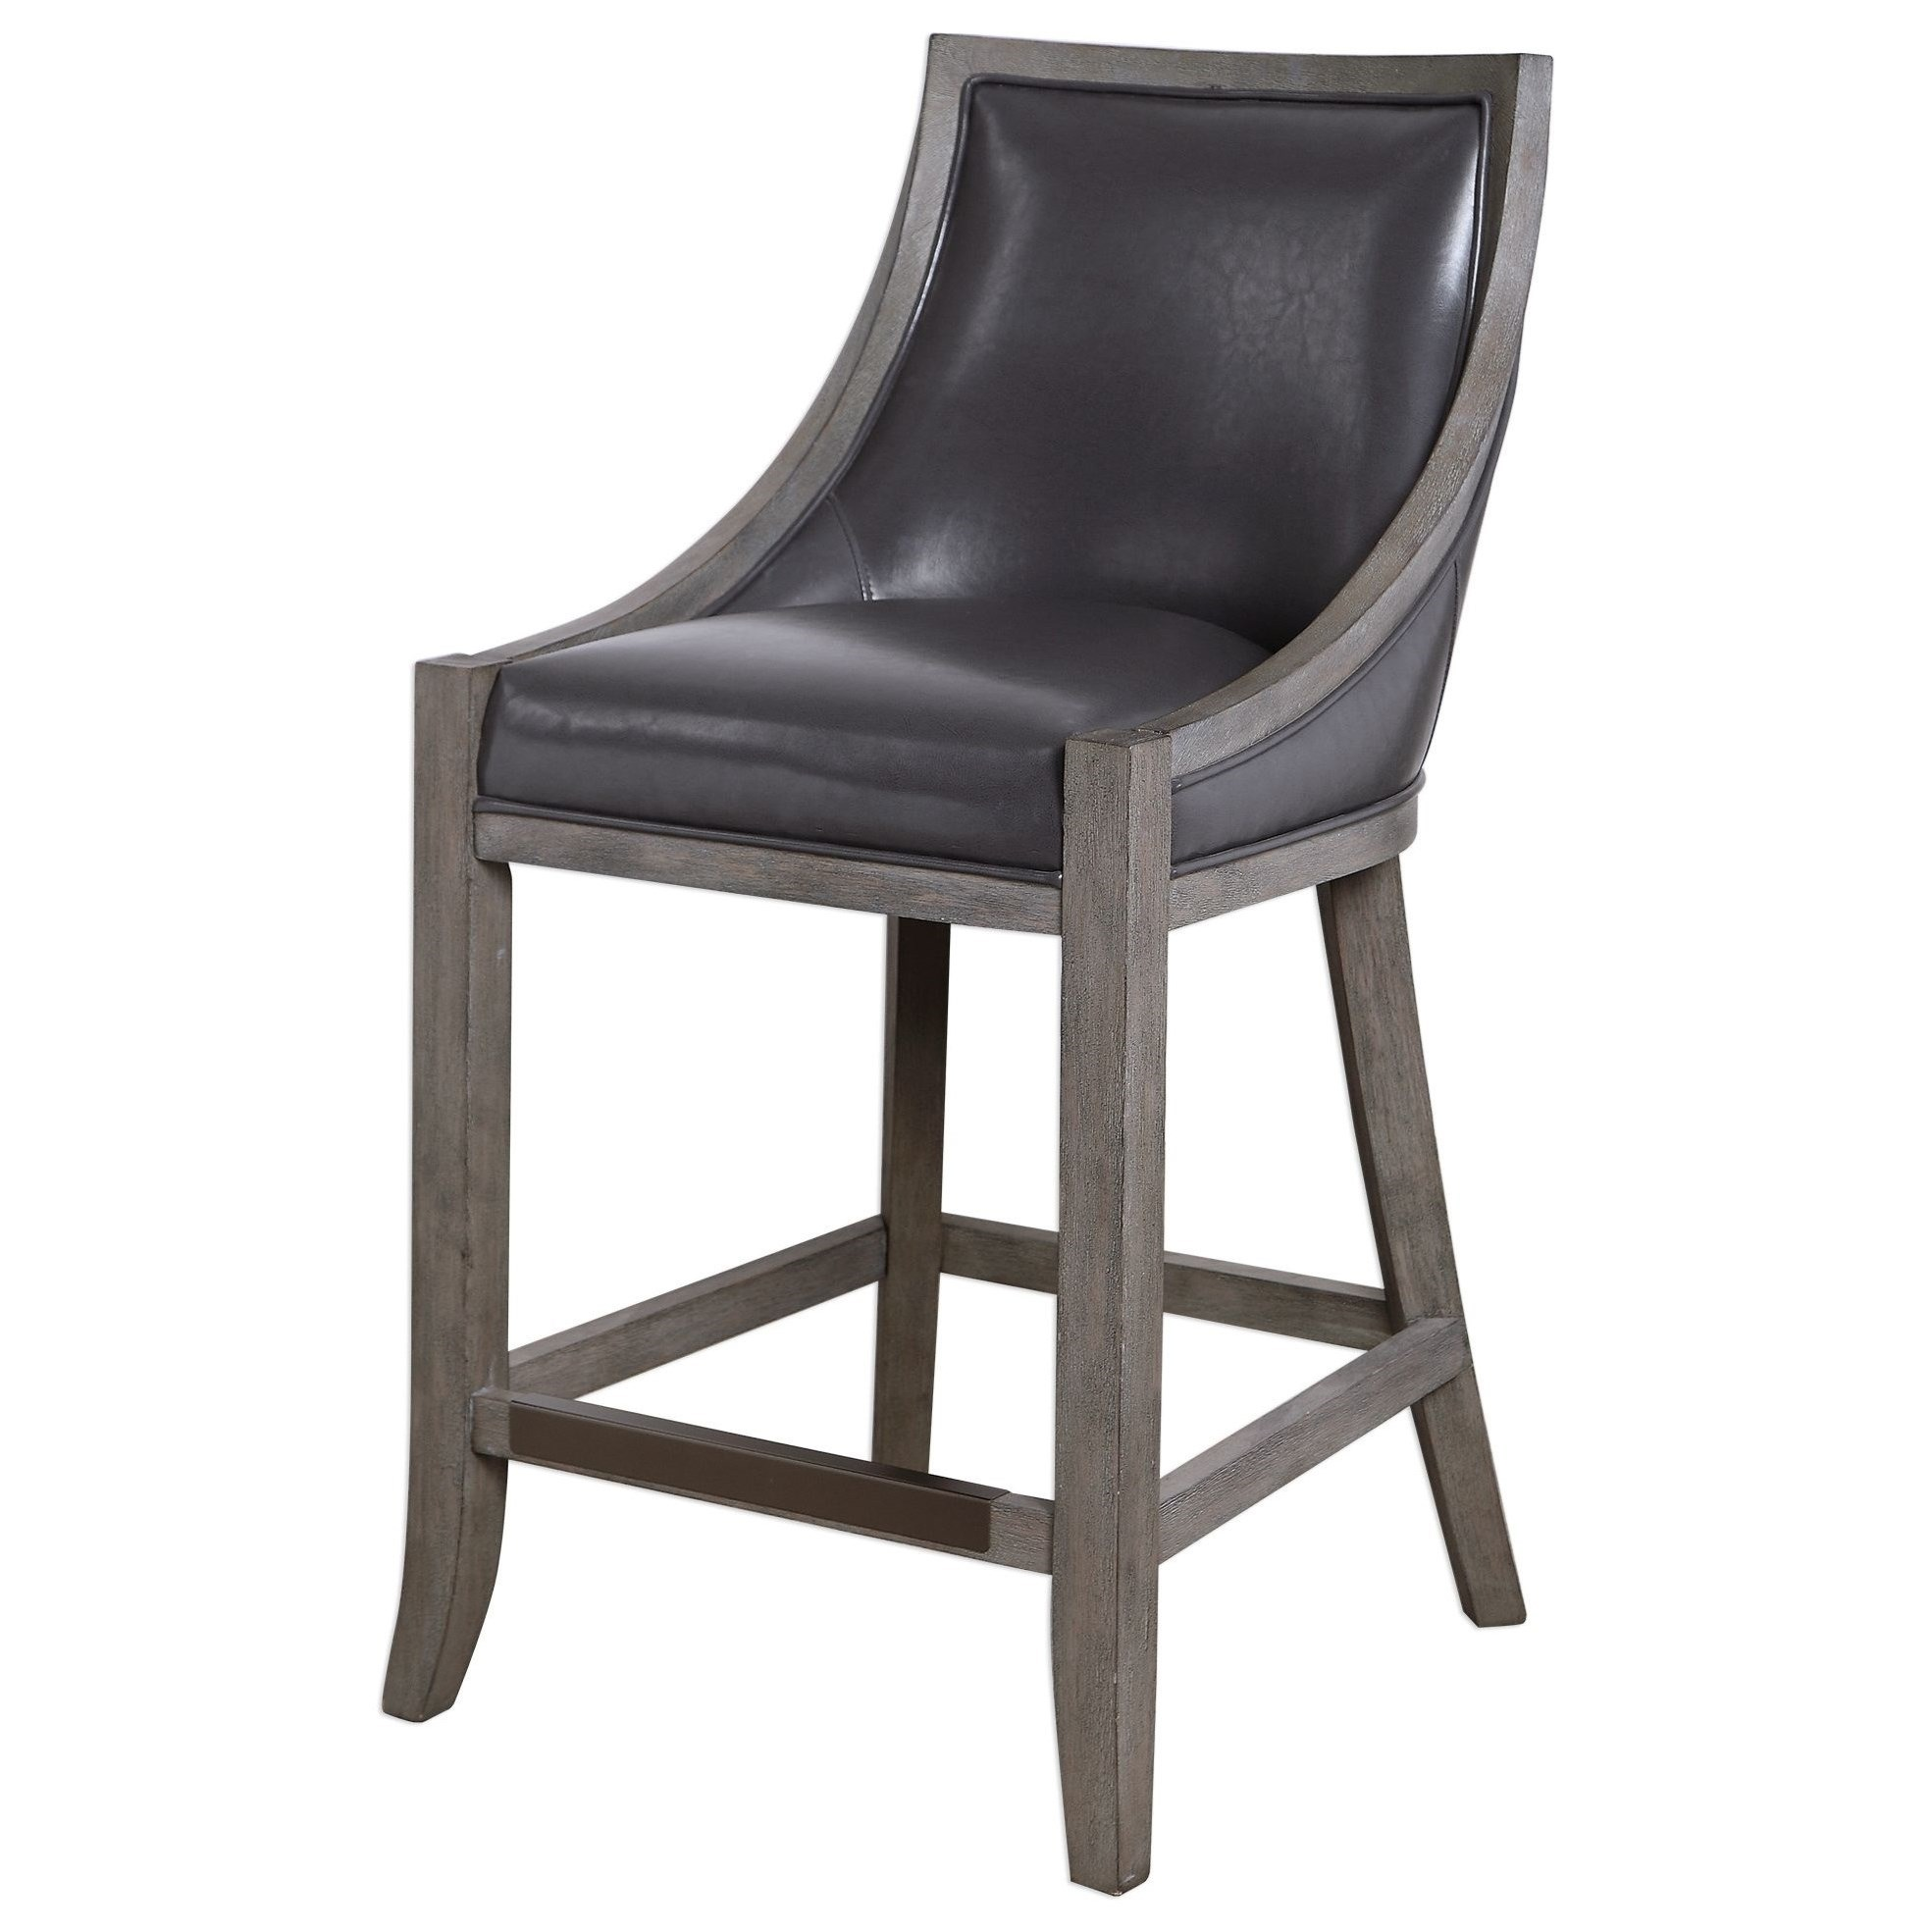 Accent Furniture - Stools Elowen Leather Counter Stool by Uttermost at Upper Room Home Furnishings